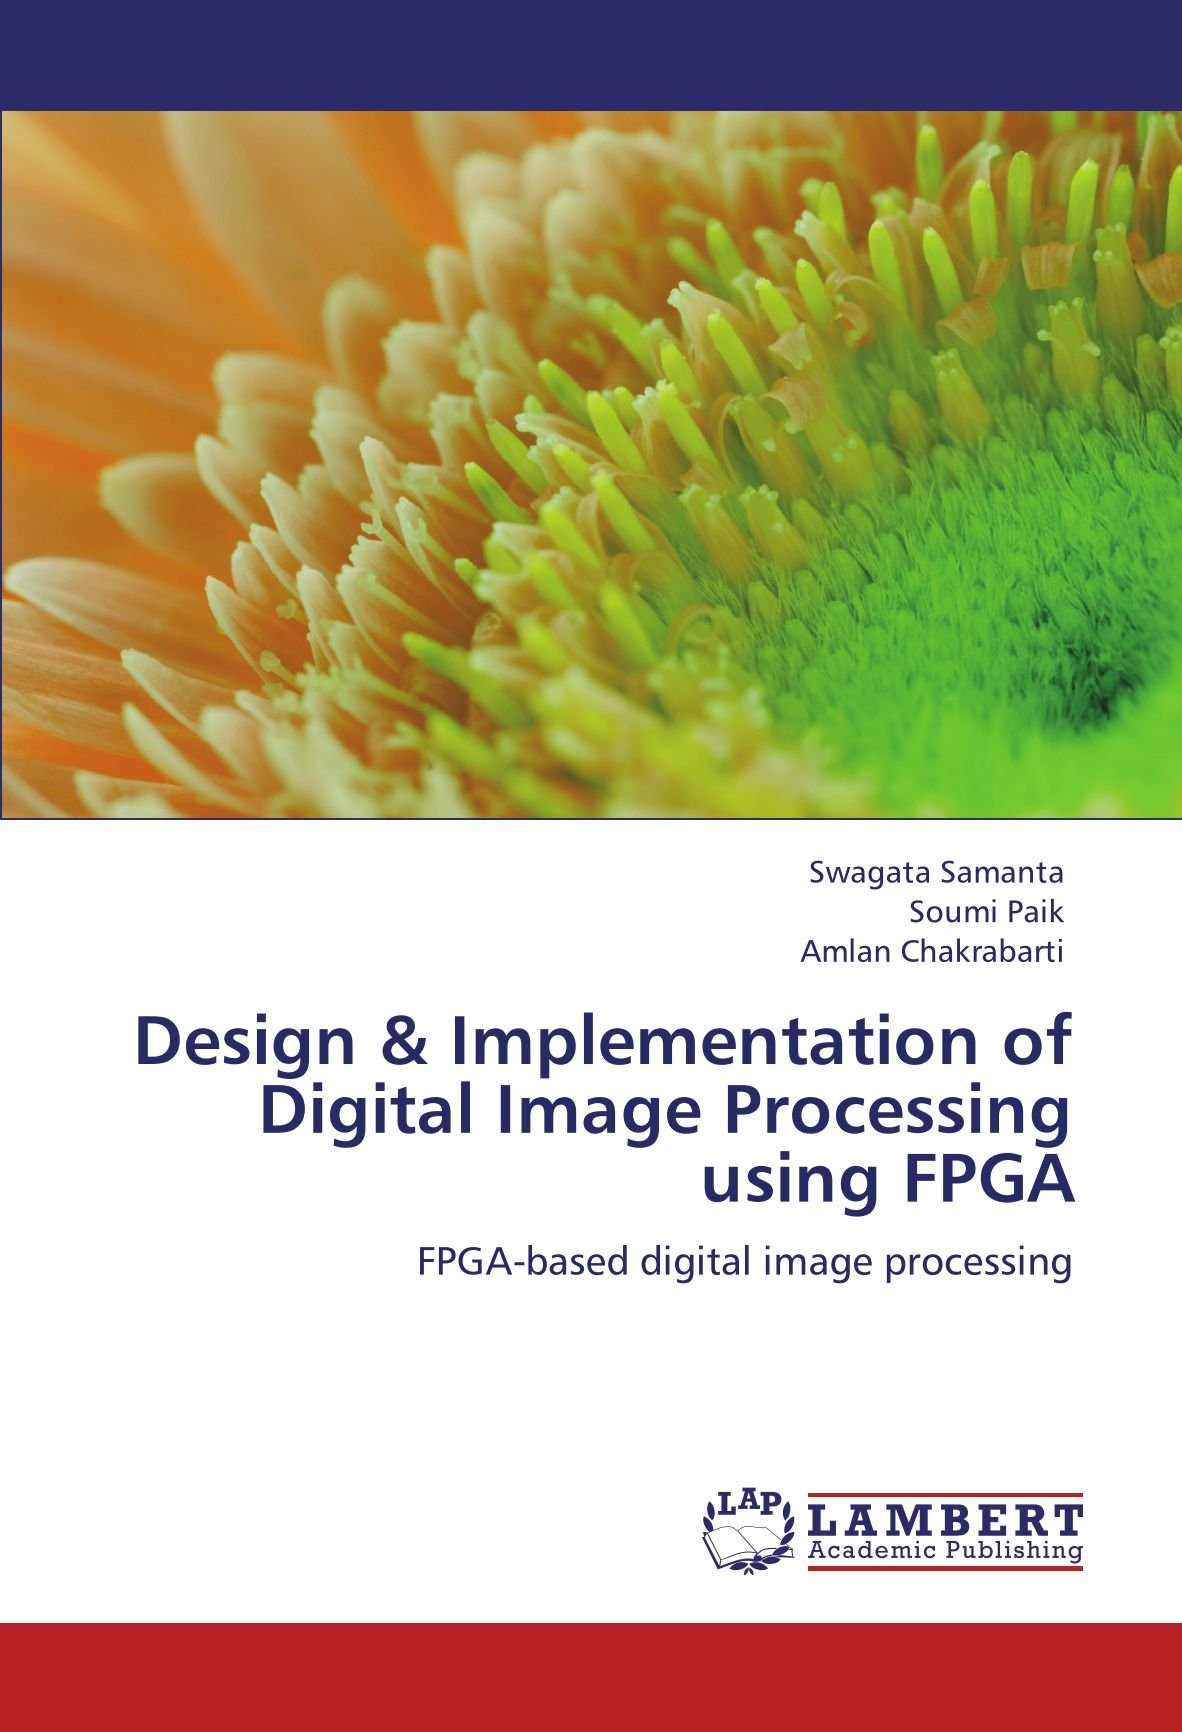 Design & Implementation of Digital Image Processing using